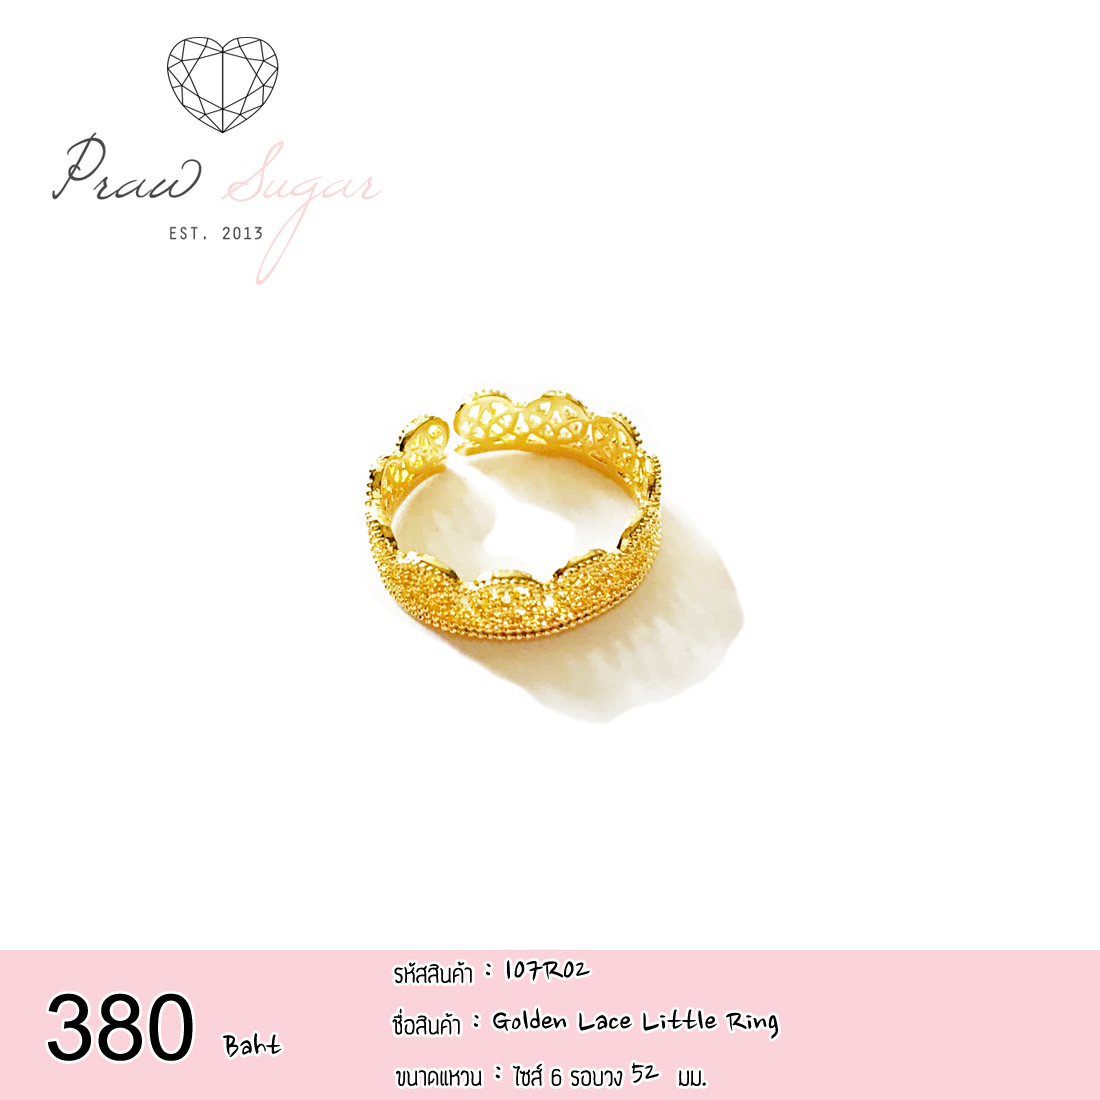 Golden Lace Little Ring